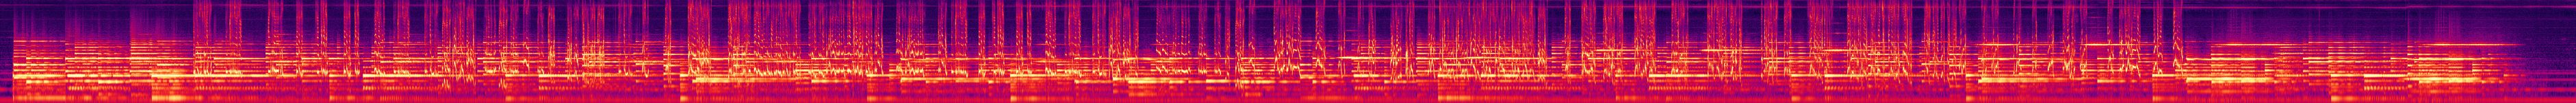 The Dreams - 4. Sea - Spectrogram.jpg